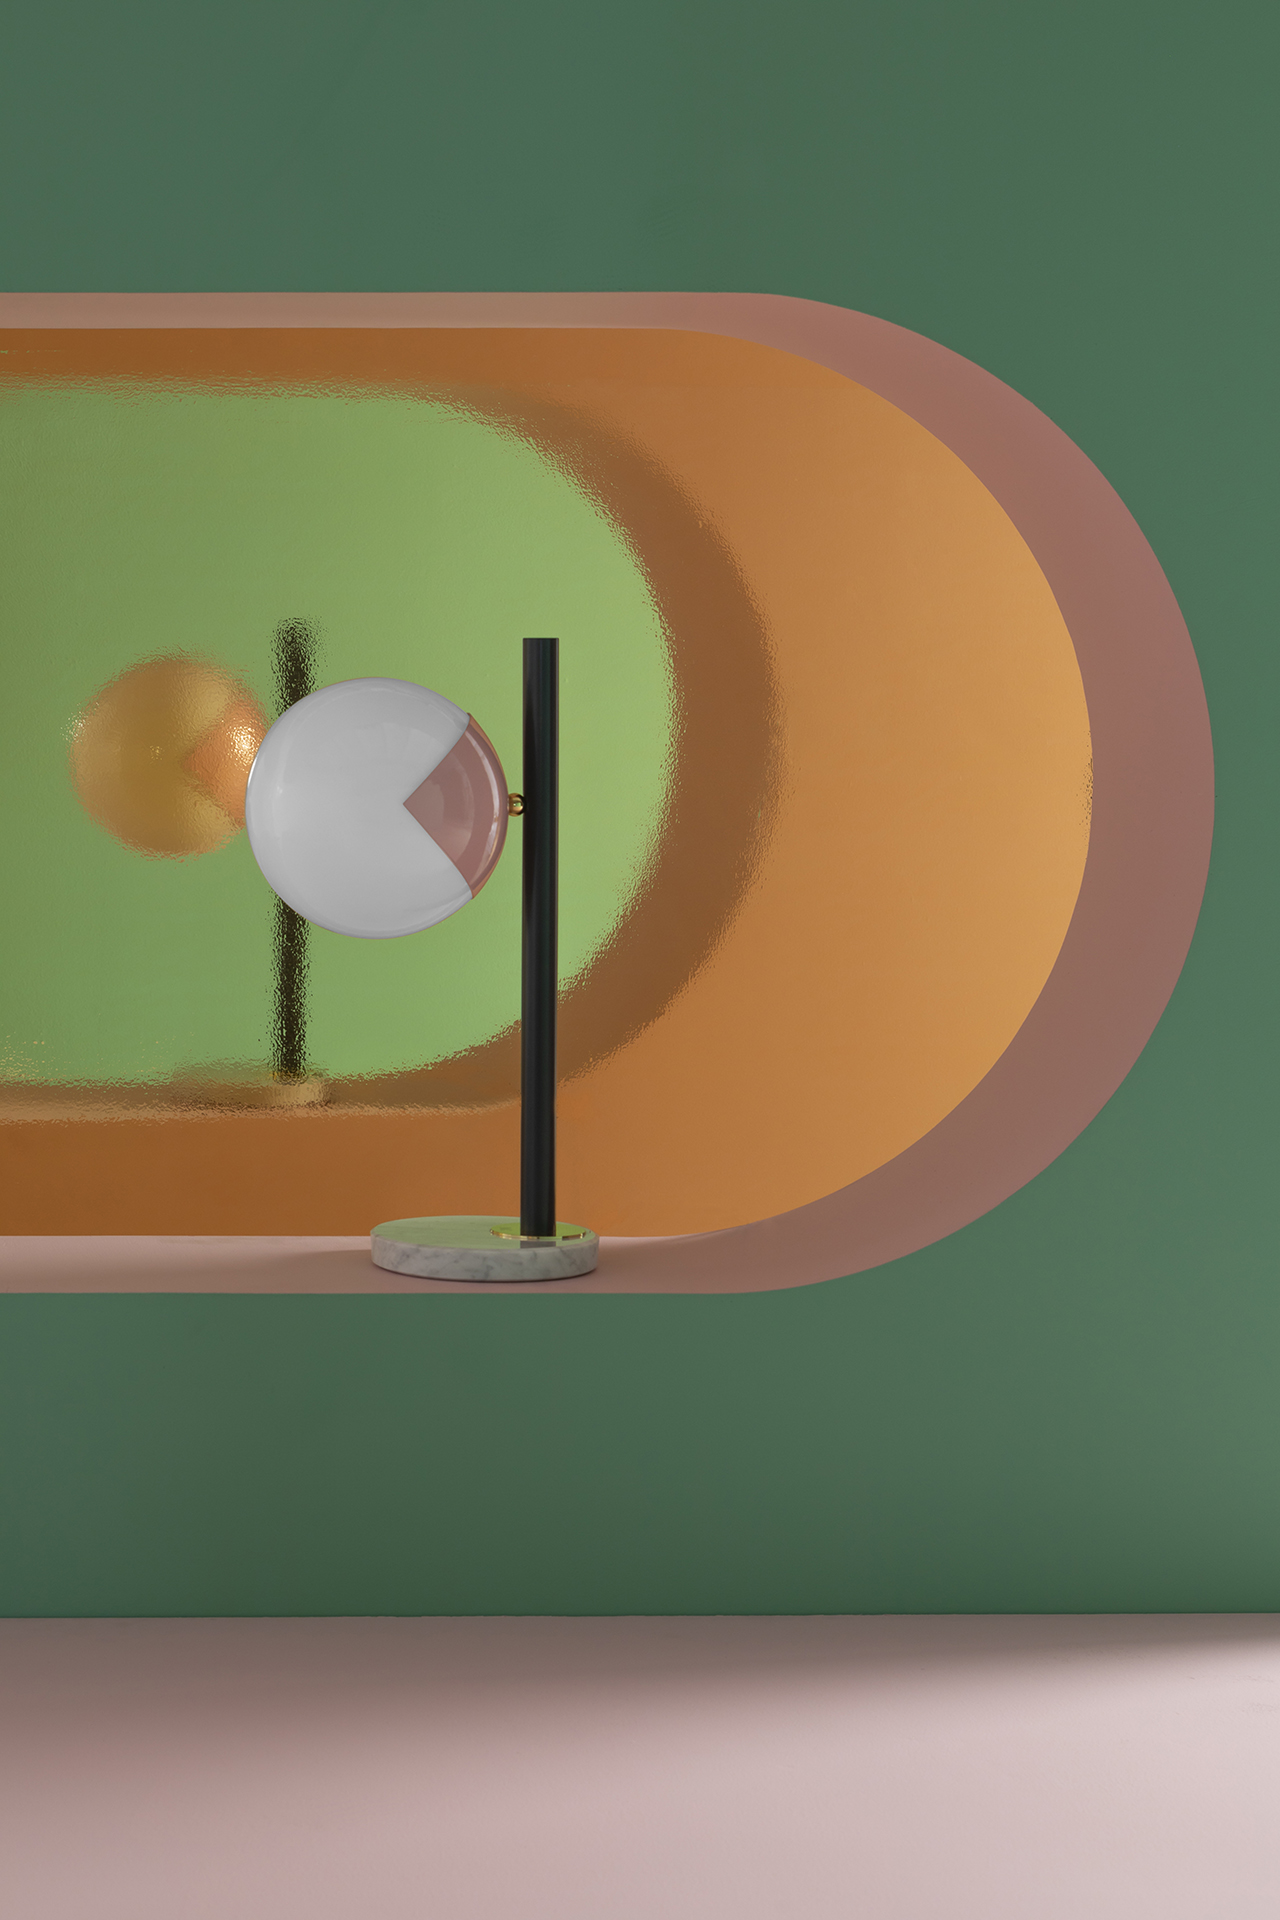 black and pink table lamp perched in wall opening in green, pink, and orange space